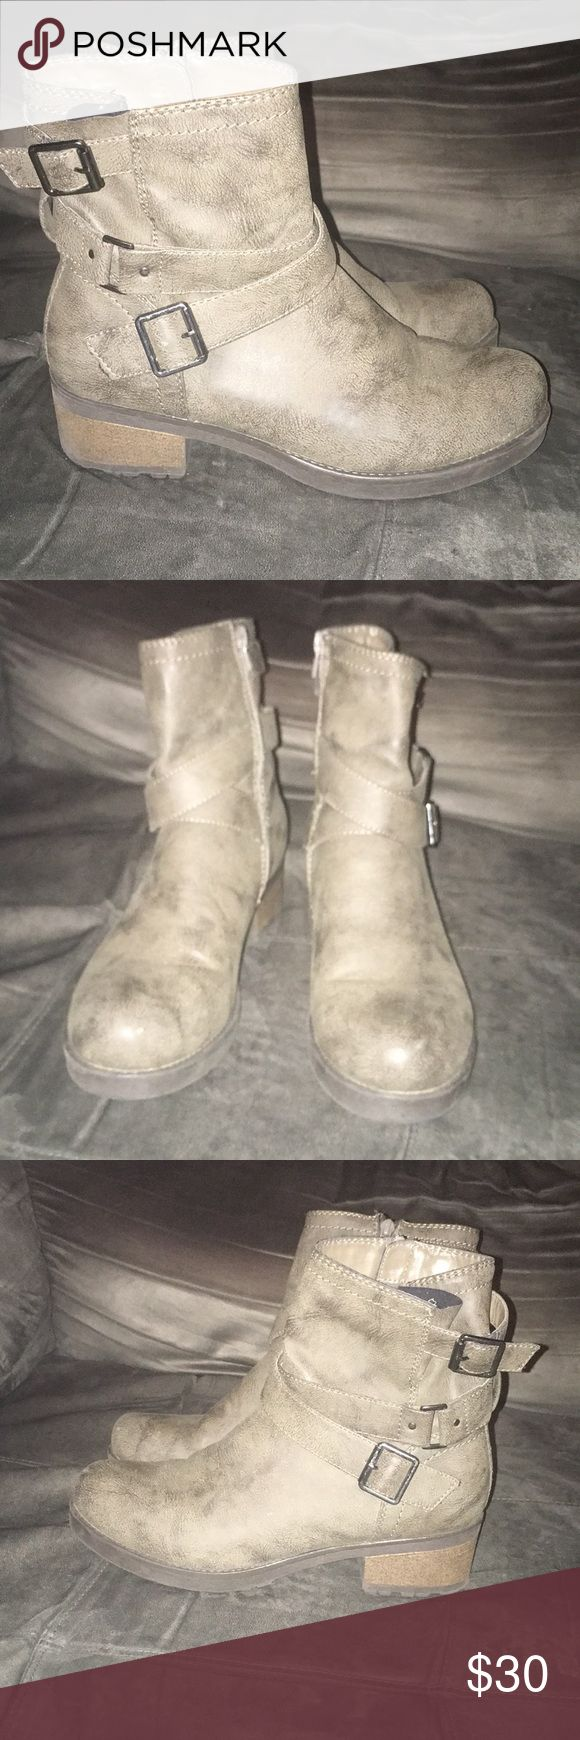 White mountain boots sz 10 White mountain boots sz 10 good condition slight wear White Mountain Shoes Ankle Boots & Booties